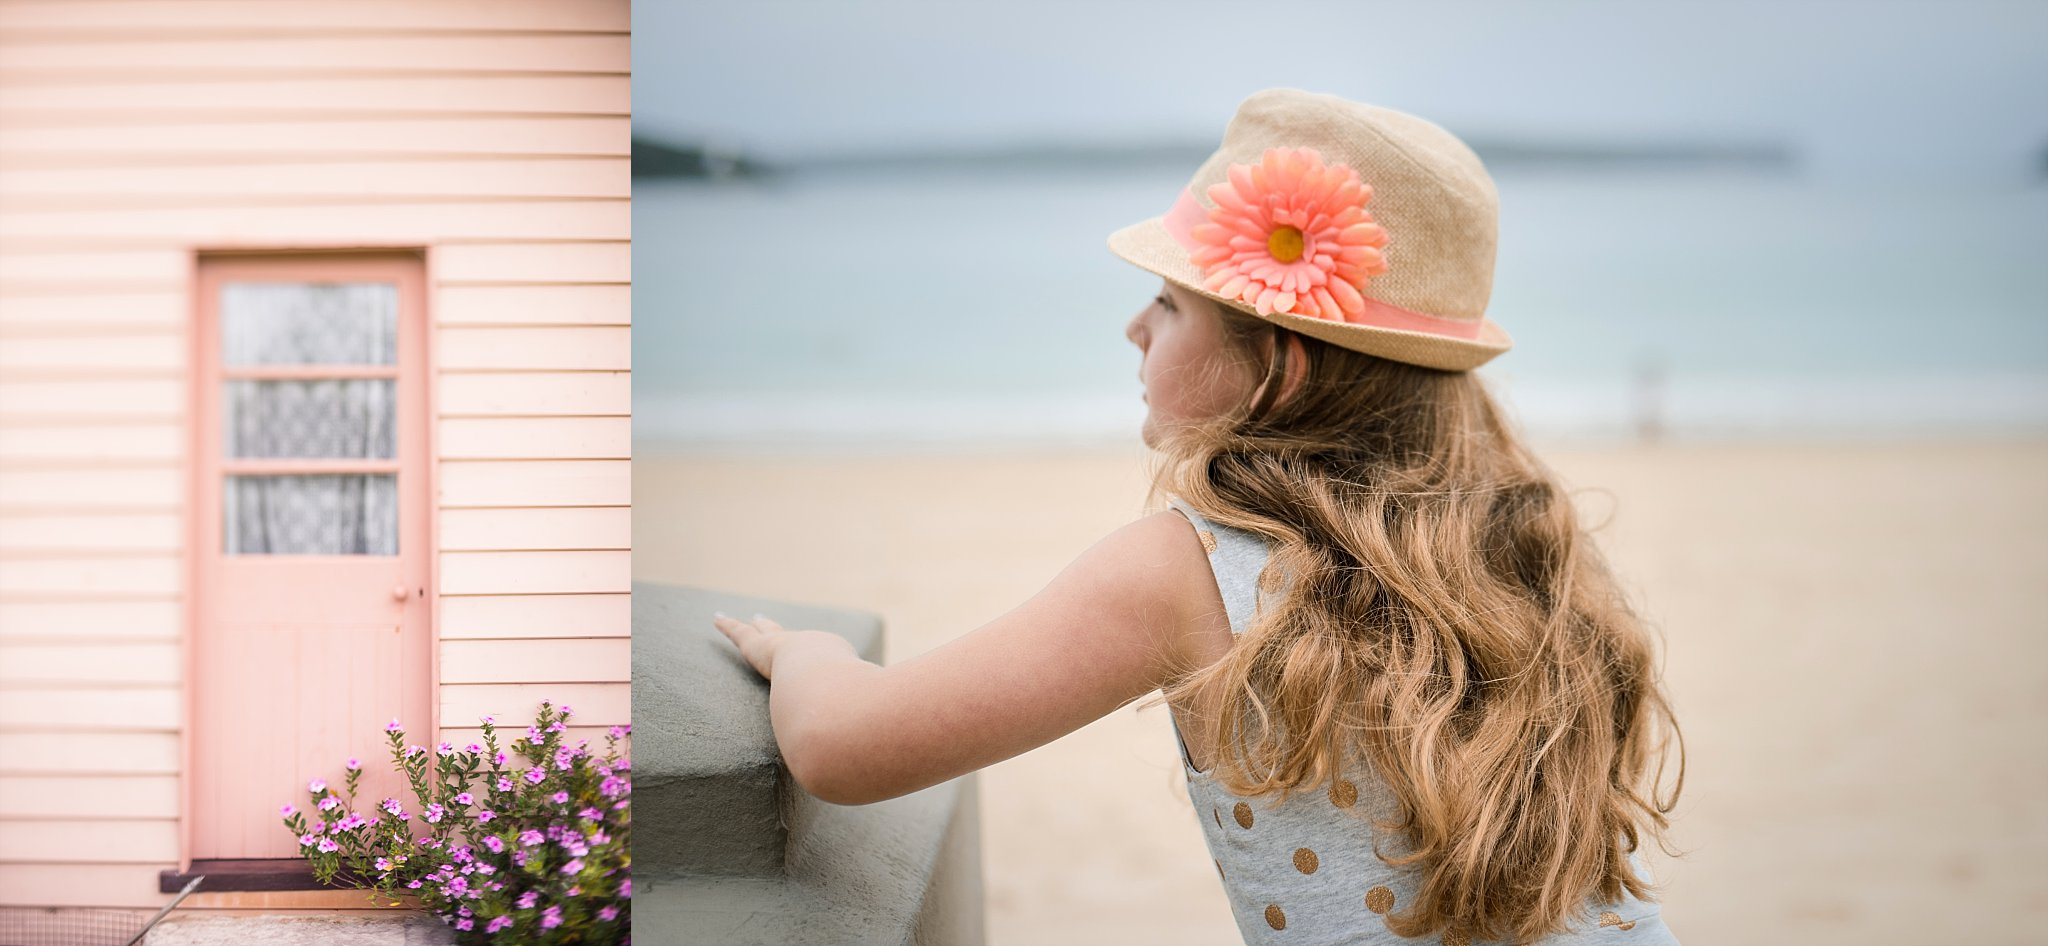 Diptych of still life and portrait of a girl at a beach in blues and apricots by Sydney Lifestyle photographer, Cindy Cavanagh